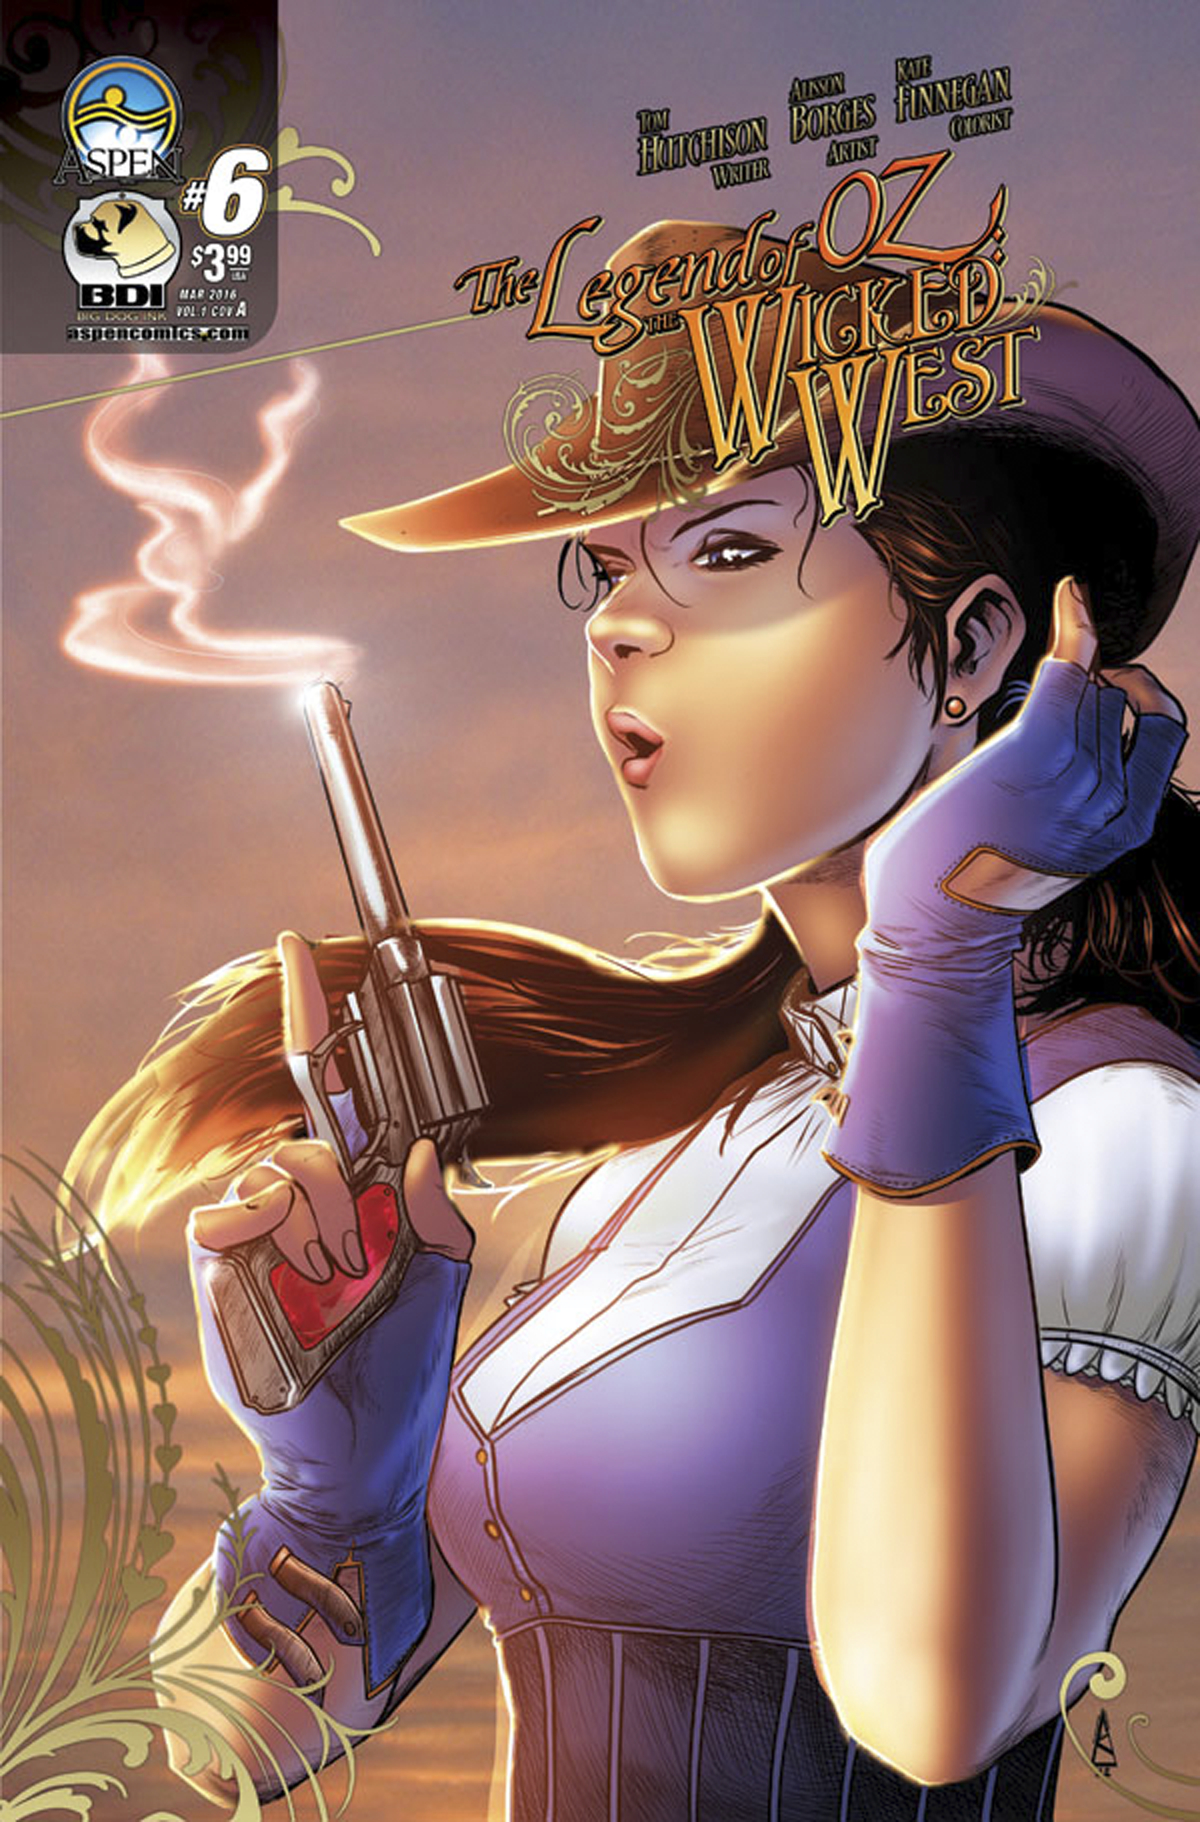 LEGEND OF OZ WICKED WEST #6 CVR A BORGES